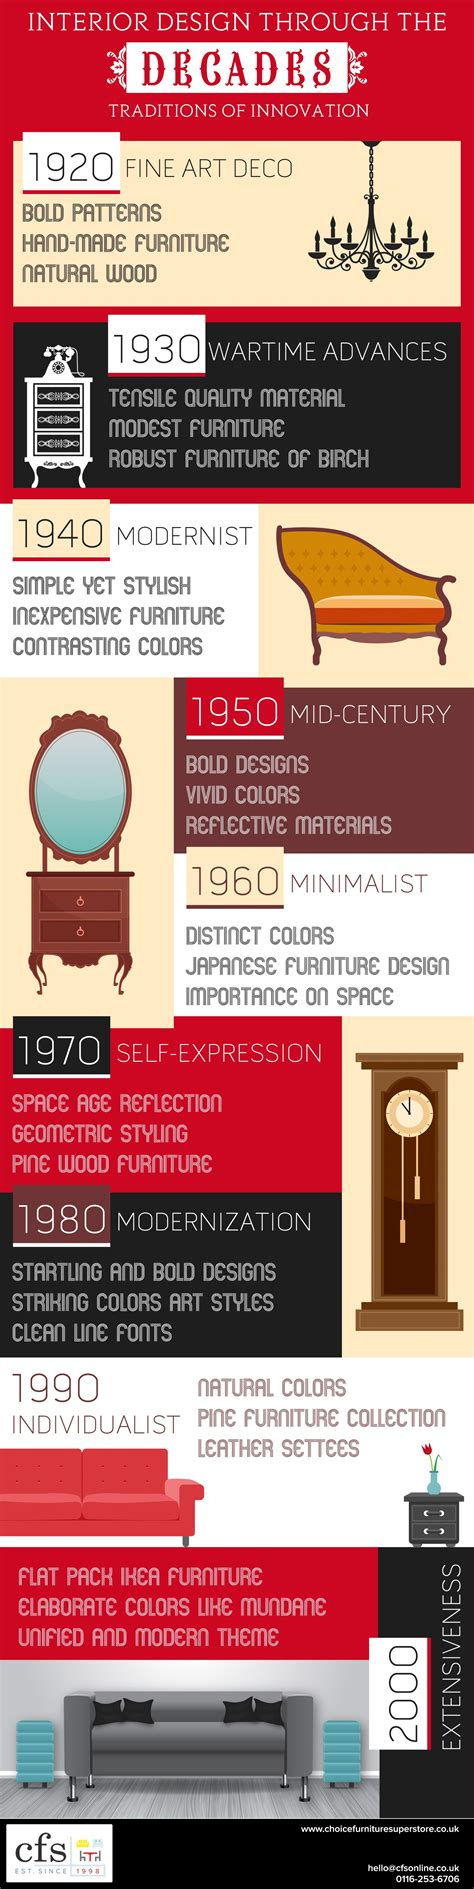 home design trends through the decades interior design through the decades infographic cfs uk